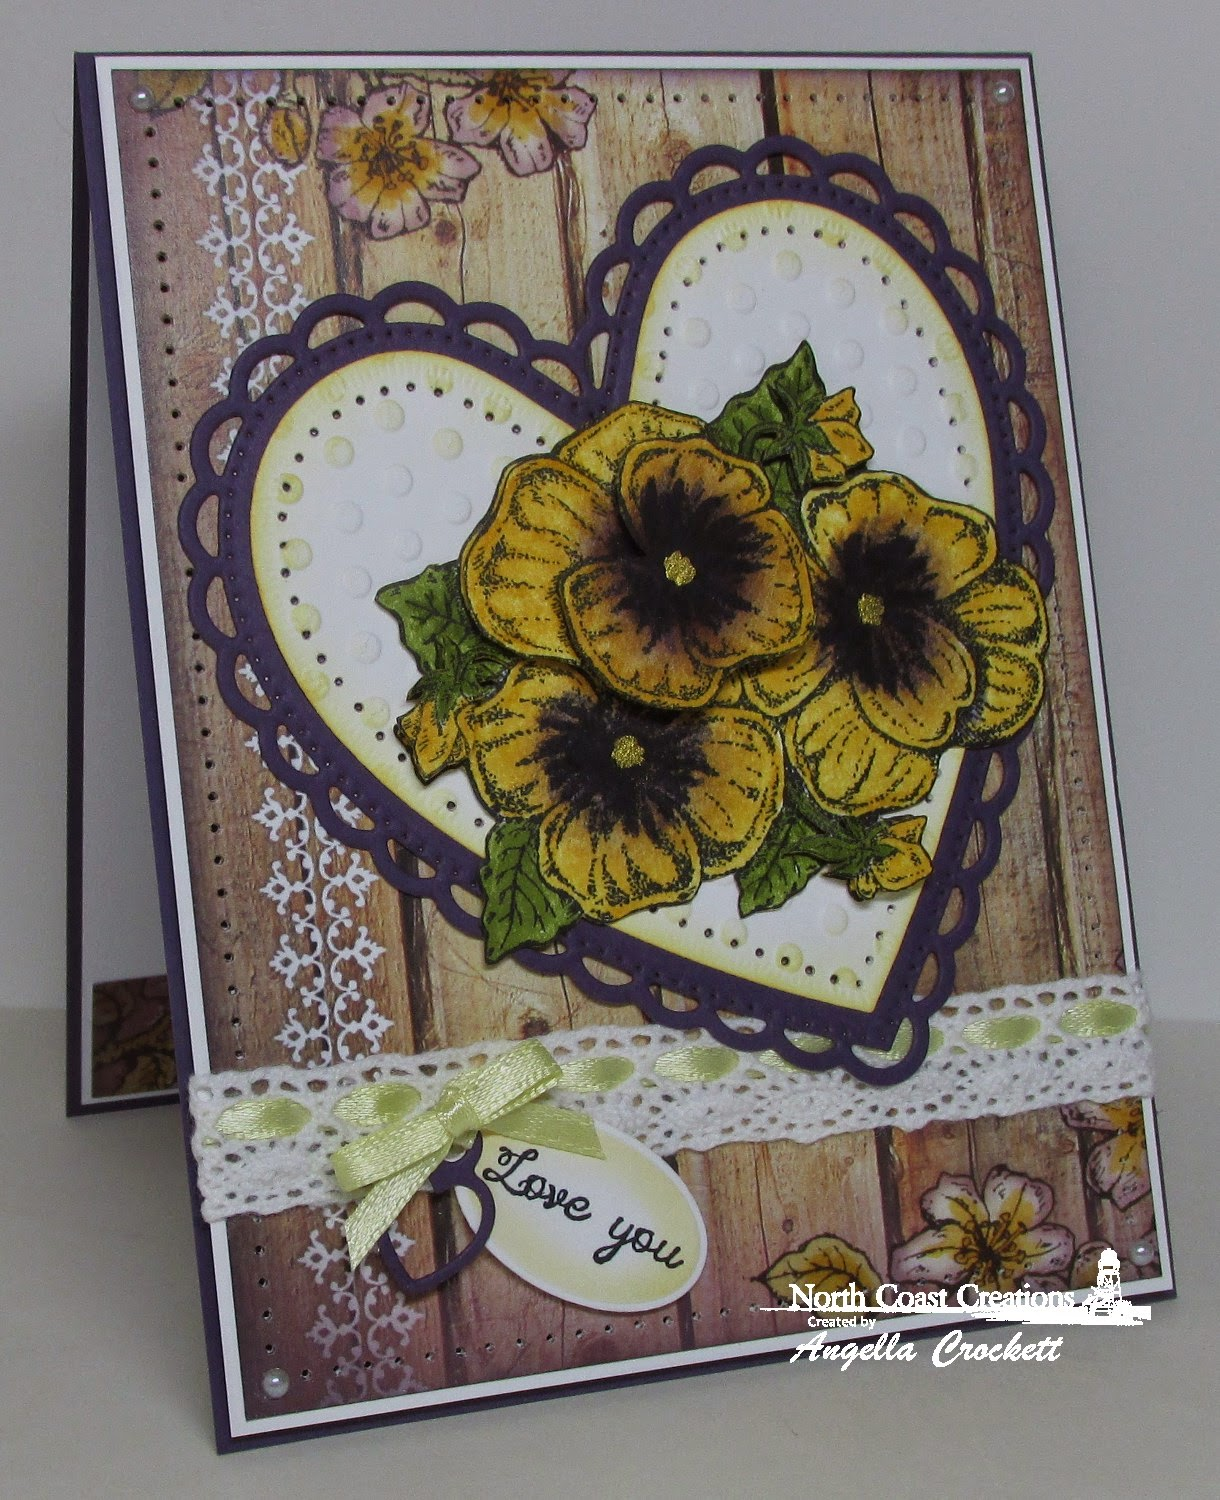 NCC Pansies, NCC Heaven's Masterpiece, ODBD Custom Ornate Hearts Dies, ODBD Custom Mini Tags Dies, ODBD Rustic Beauty Paper Collection, Card Designer Angie Crockett